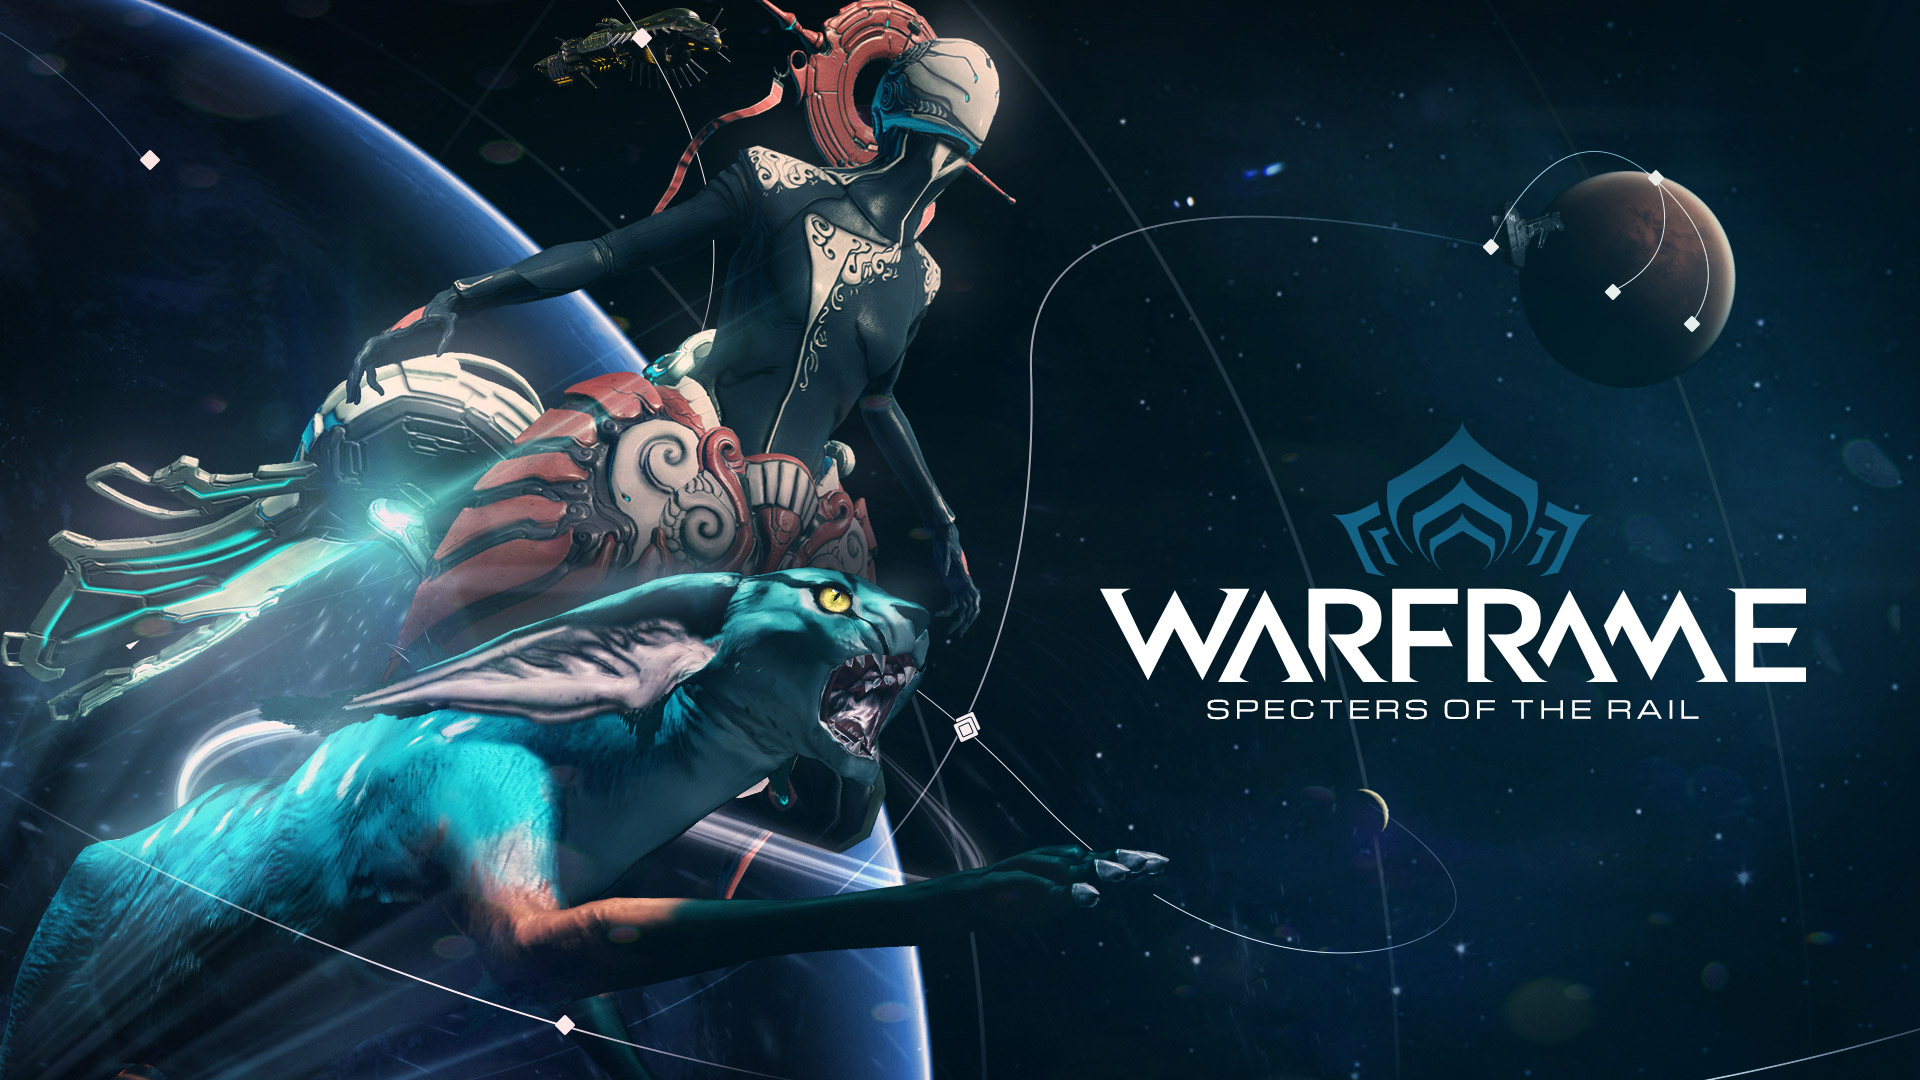 Free Warframe Wallpaper in 1920x1080